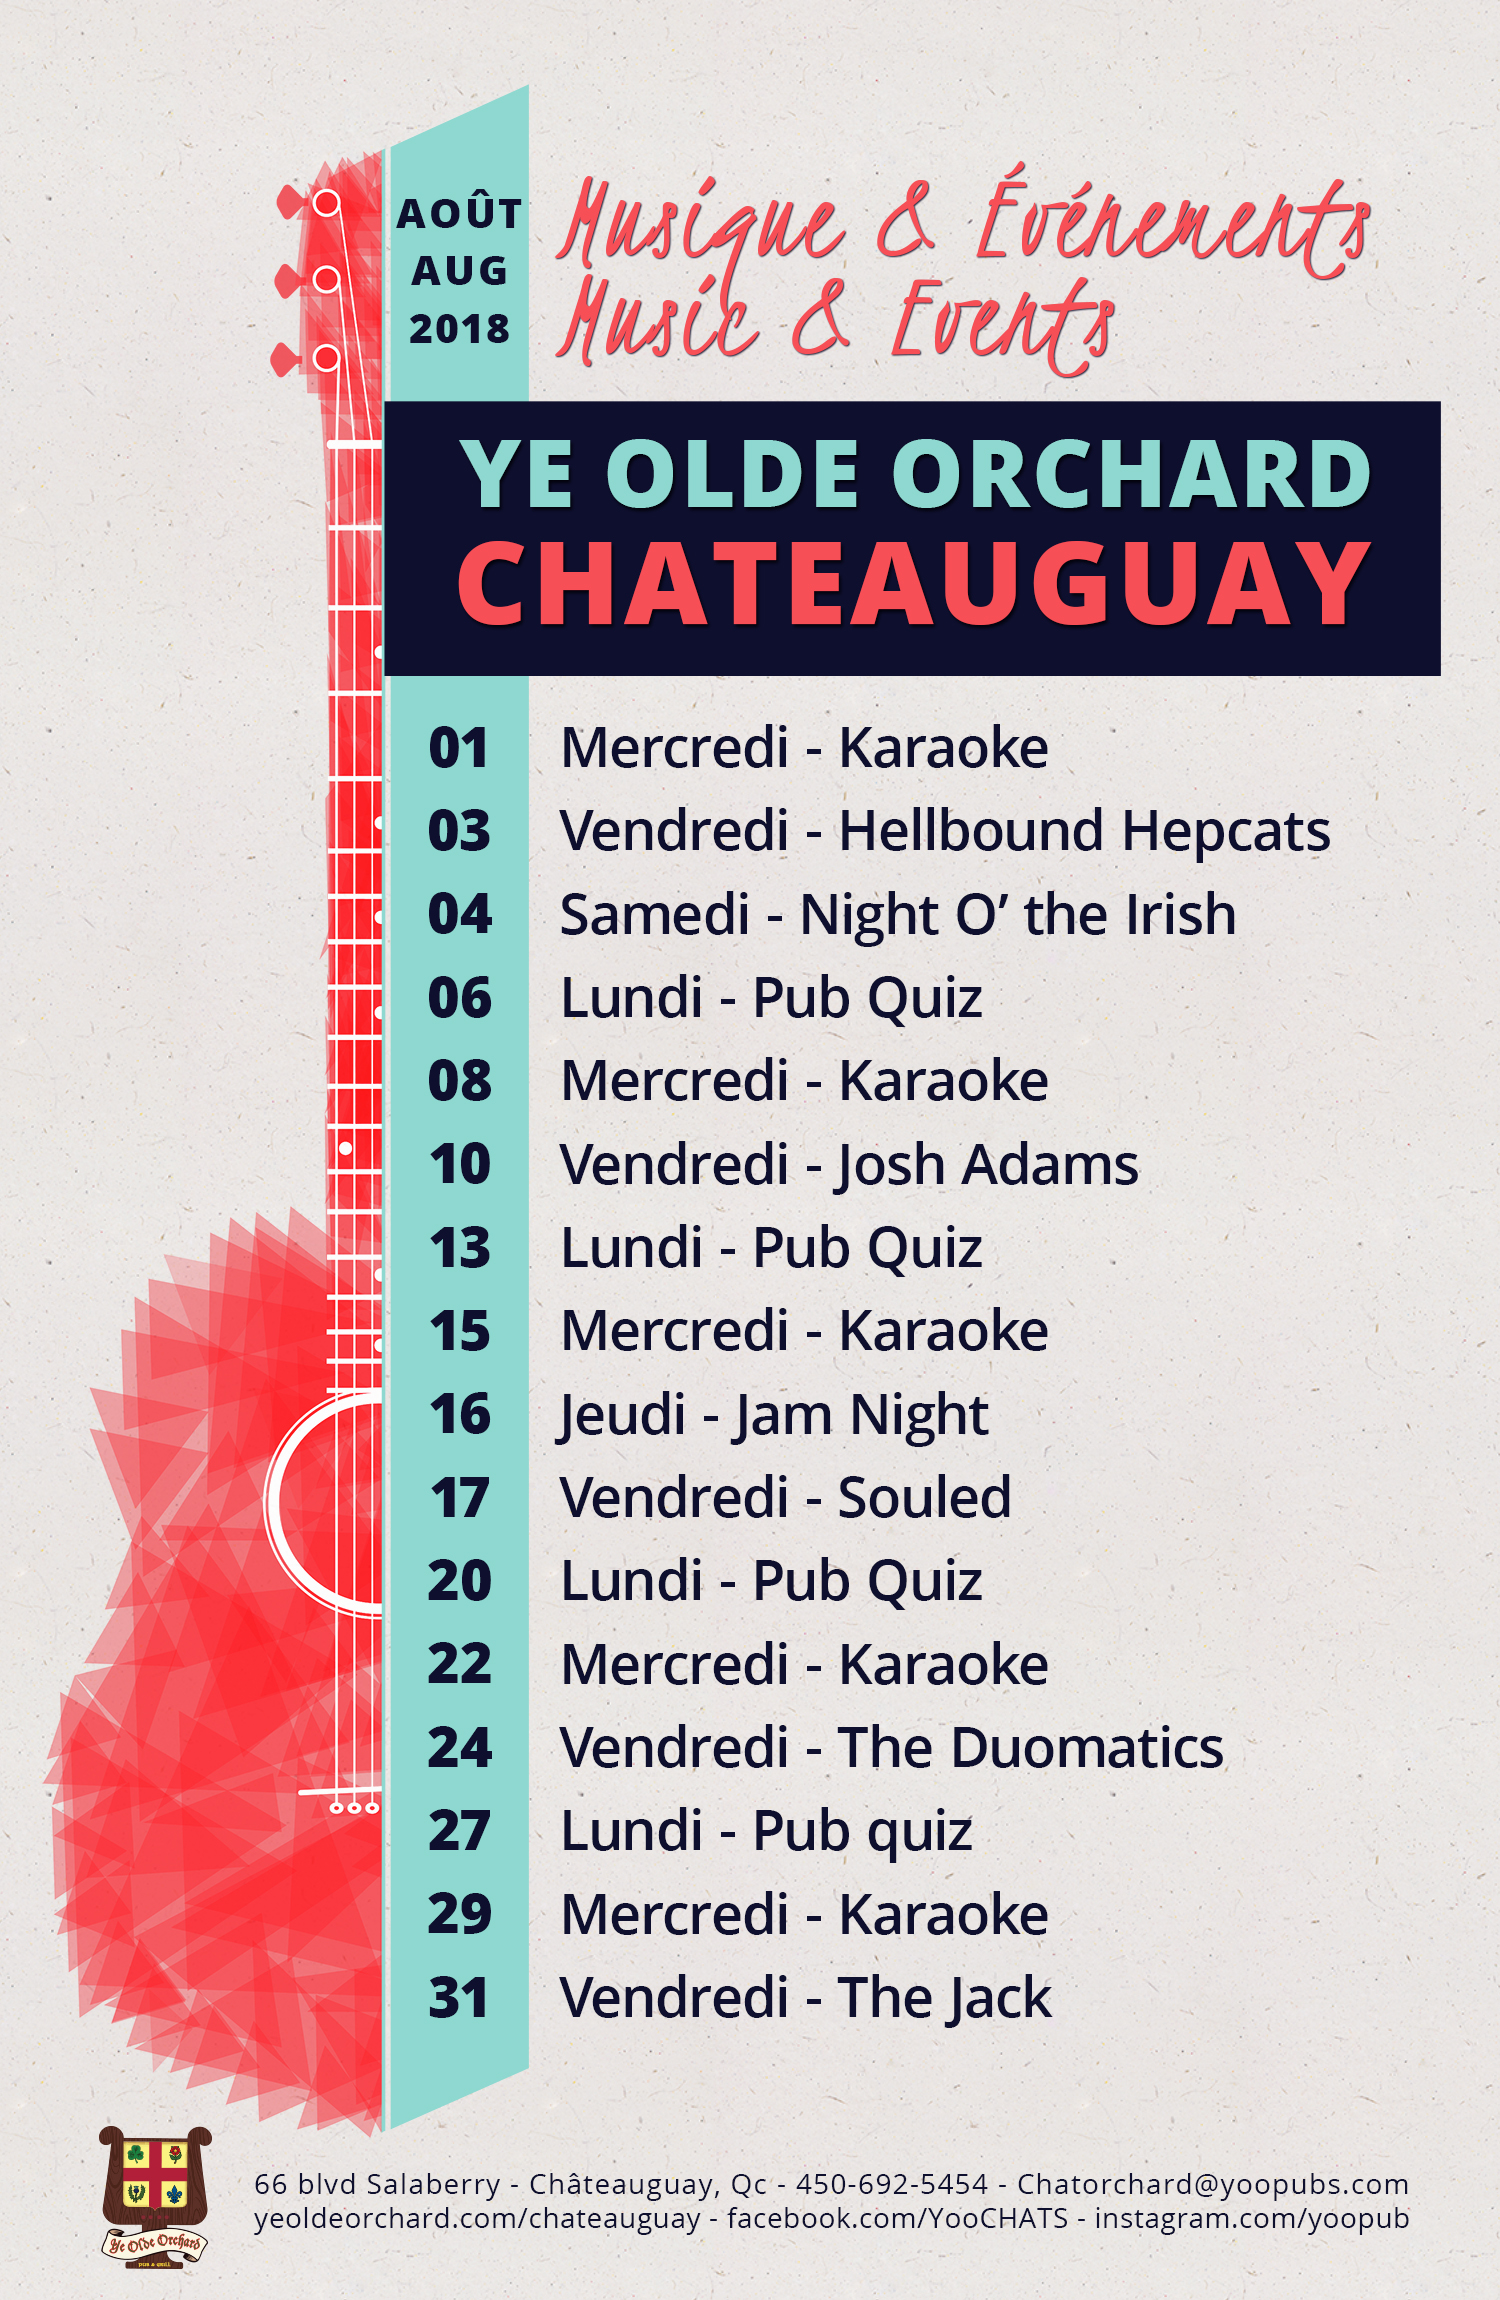 ye-olde-orchard-pub-music-and-events-calendar-chateauguay-august-2018-WEB